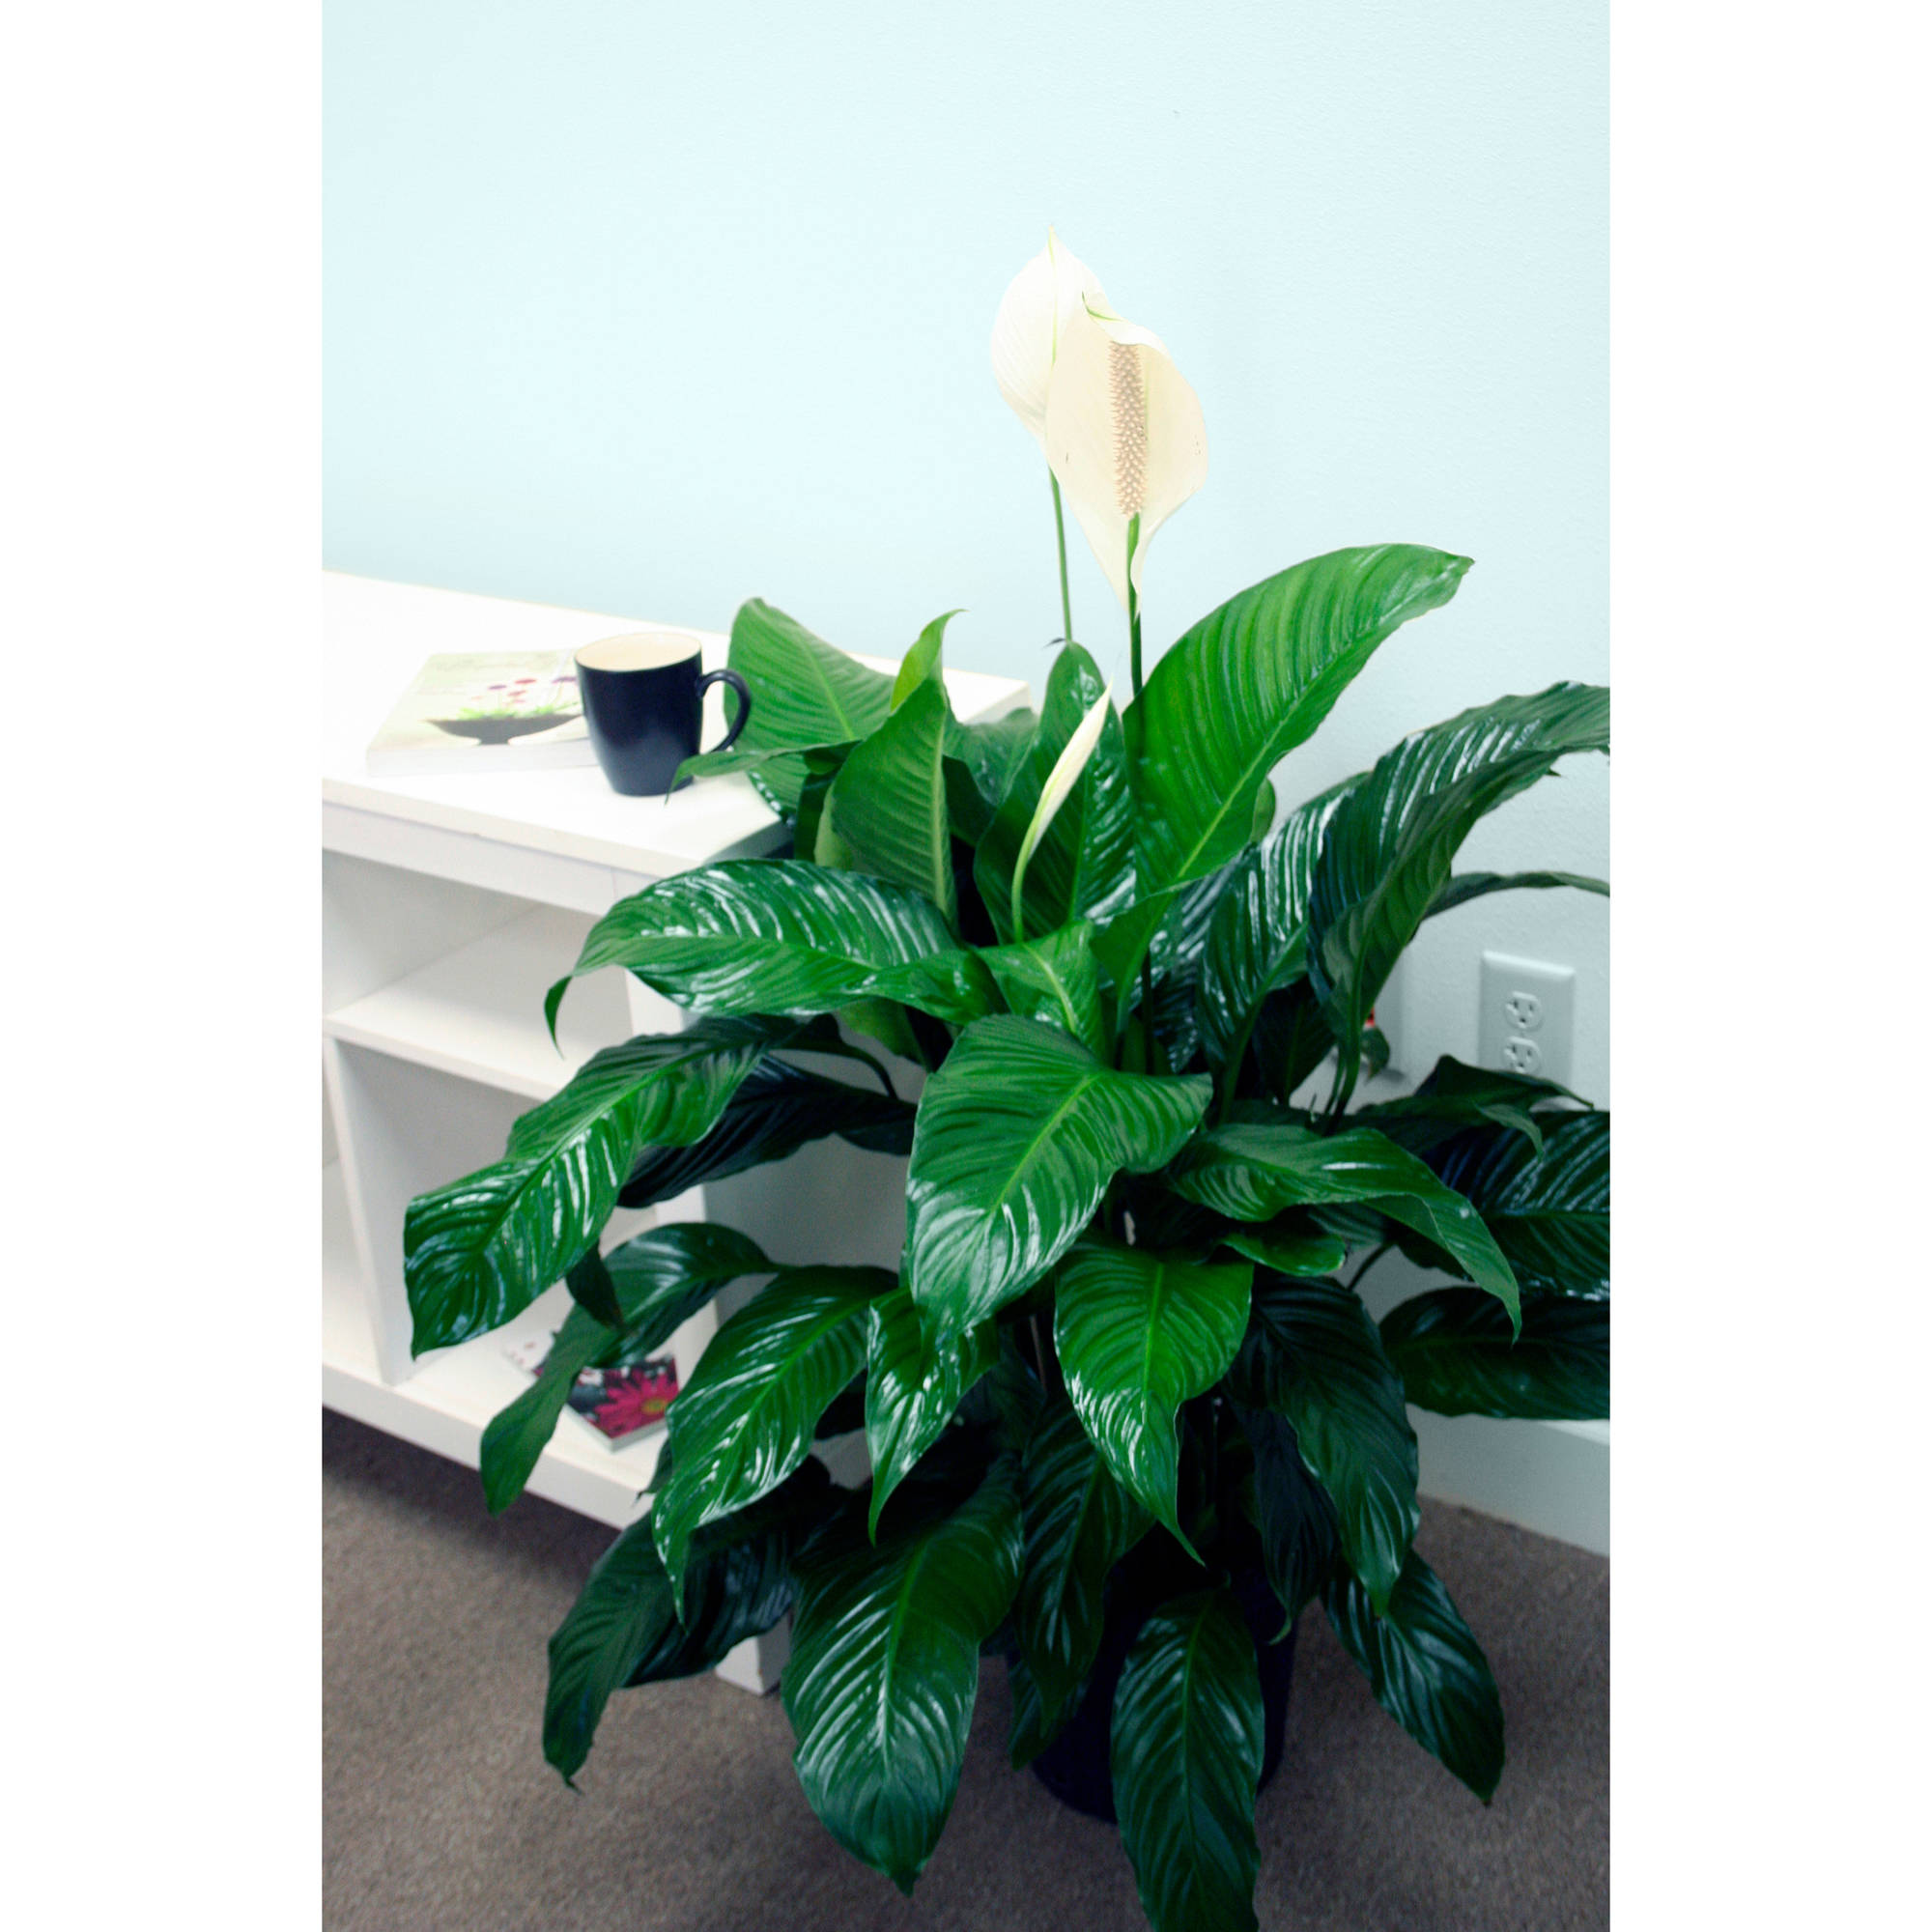 Delray plants spathiphyllum peace lily sweet pablo easy to grow delray plants spathiphyllum peace lily sweet pablo easy to grow live house plant 10 inch grower pot walmart izmirmasajfo